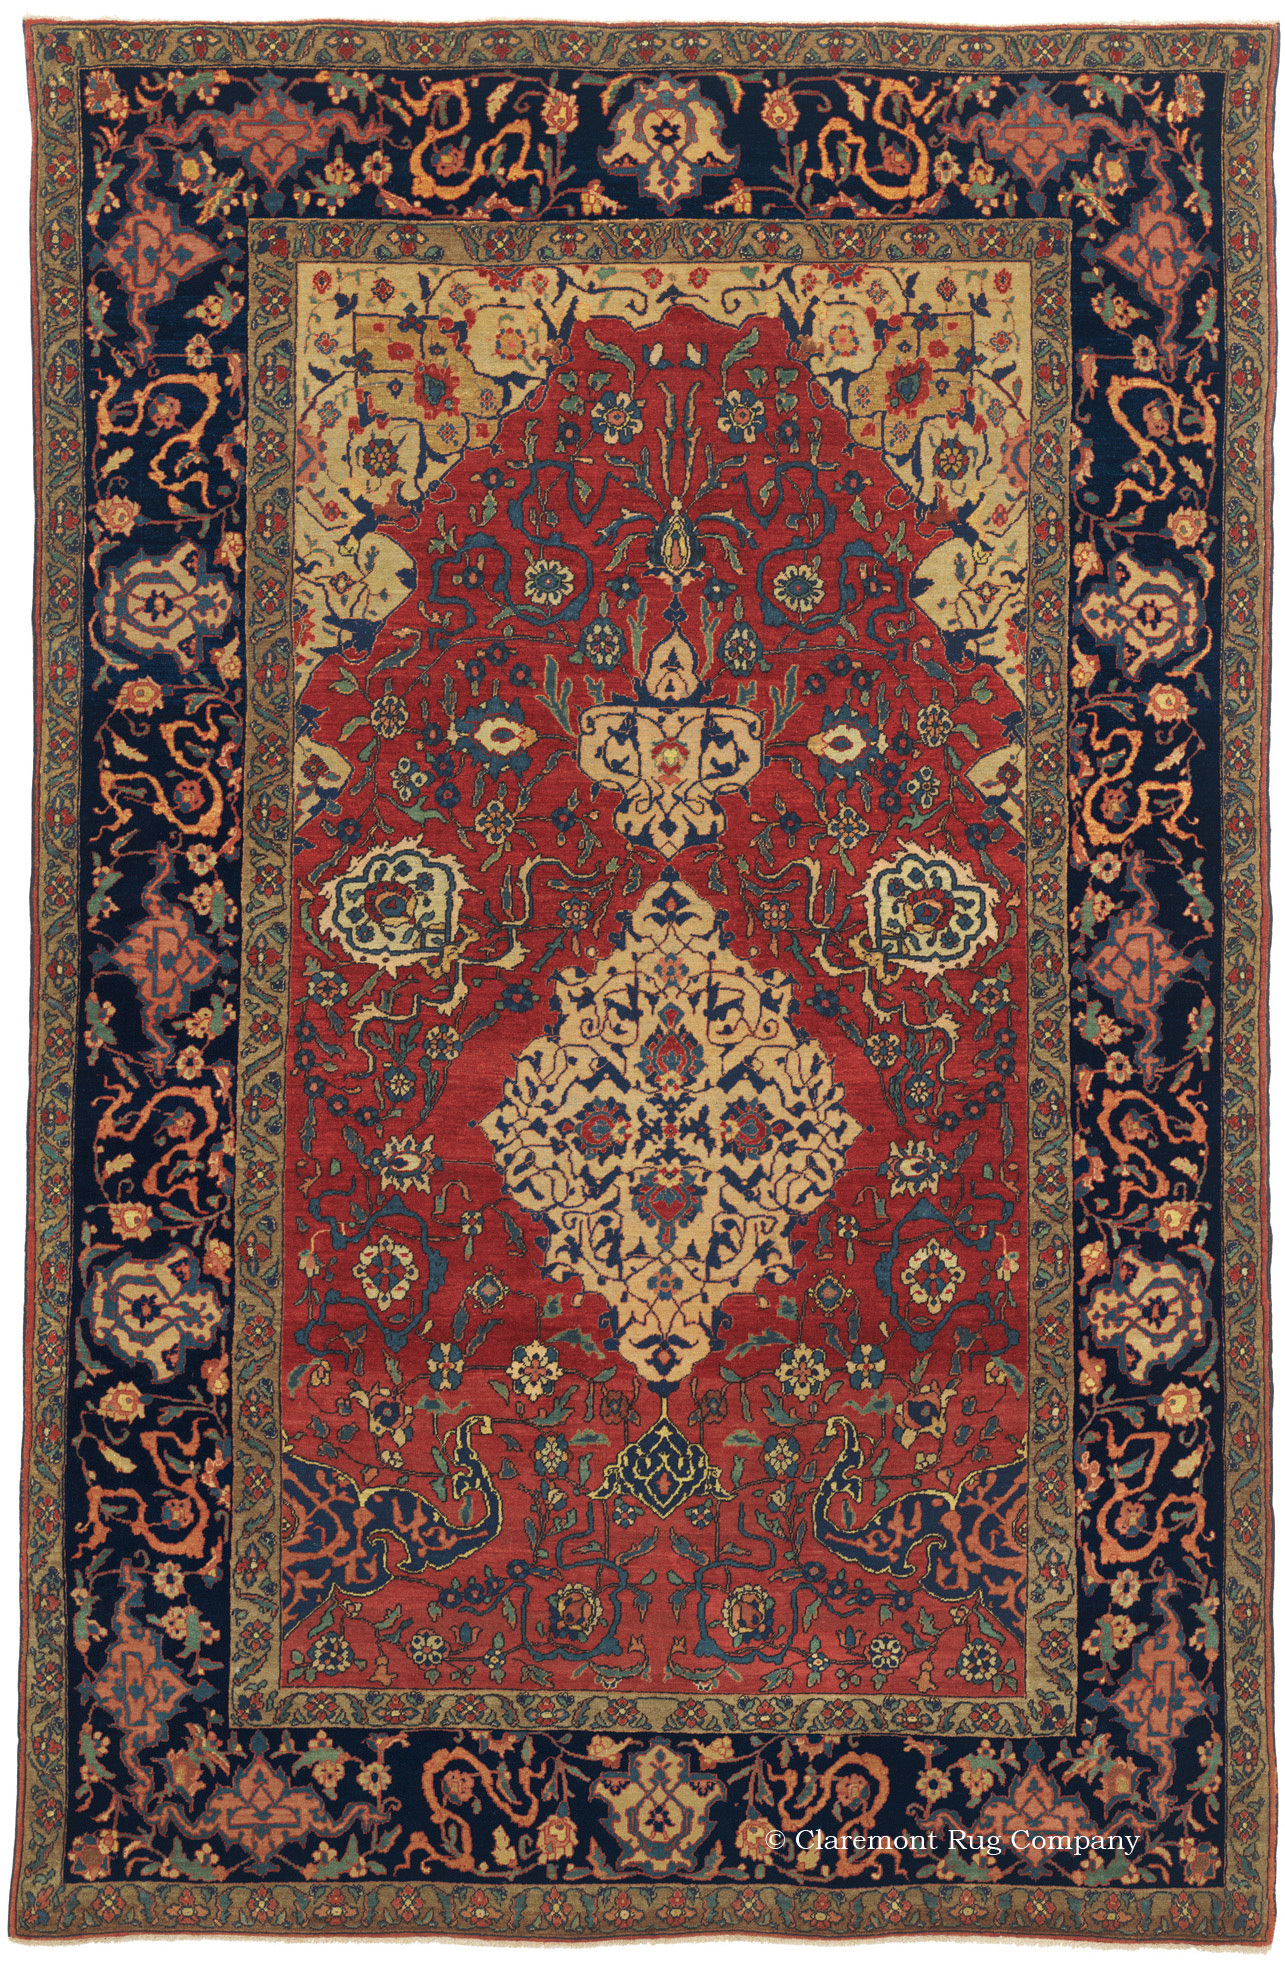 Claremont Rug Company Exhibits U201cBest Of The Best Antique Rugs Sold In 2013u201d  | Business Wire